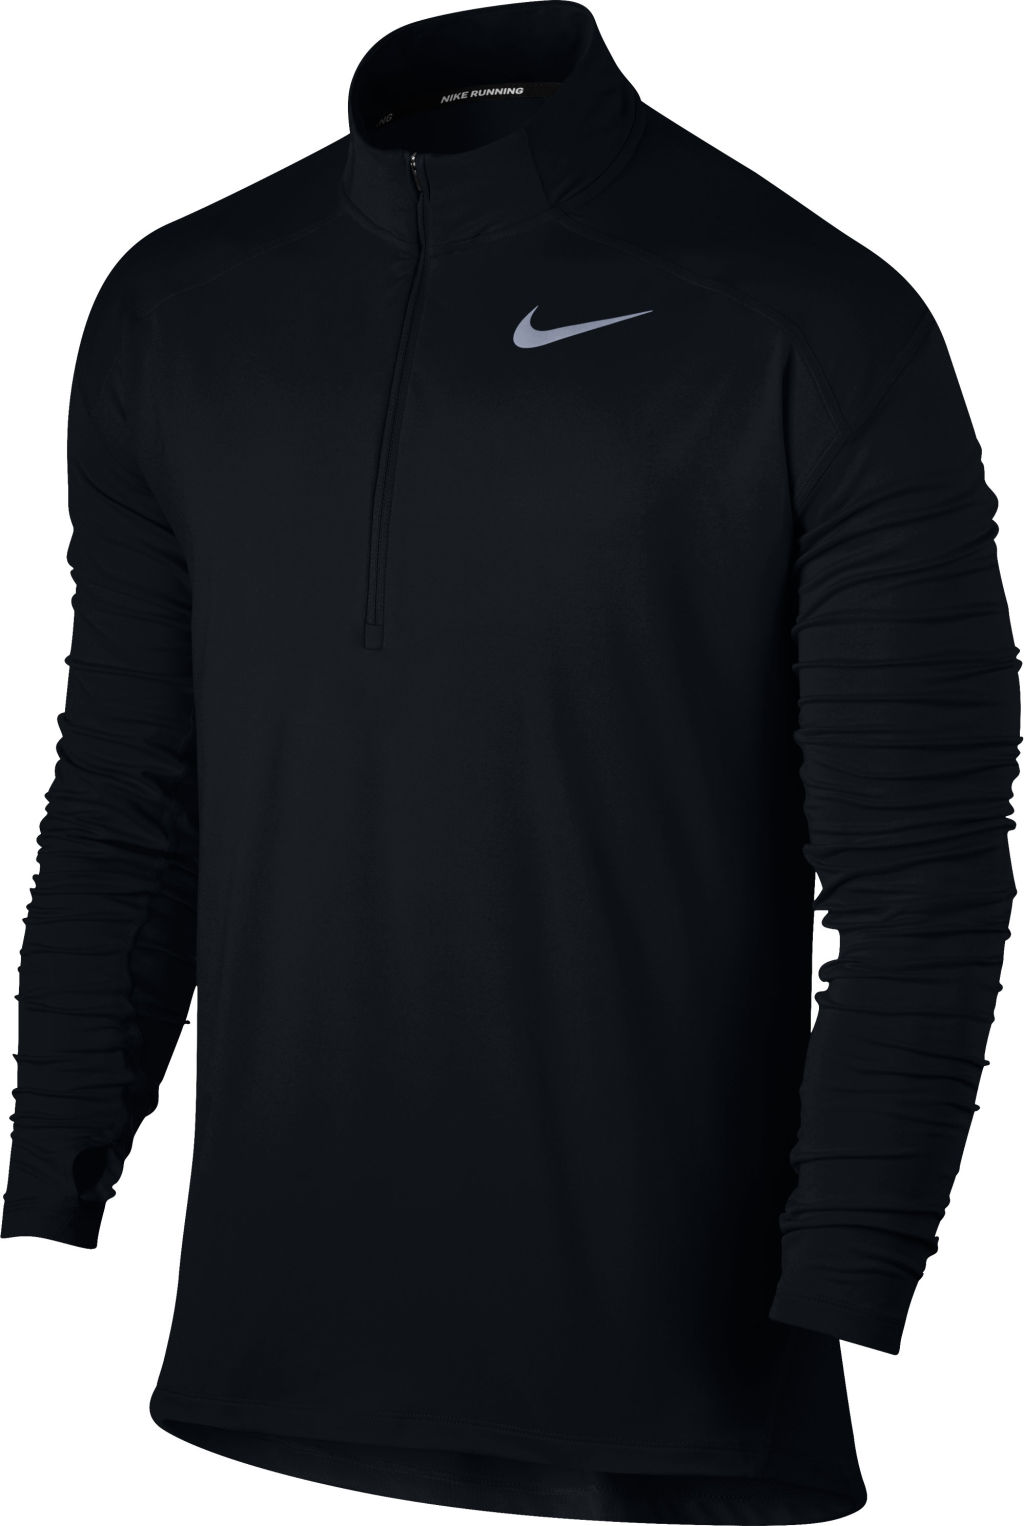 Nike Dry Element Running Top M